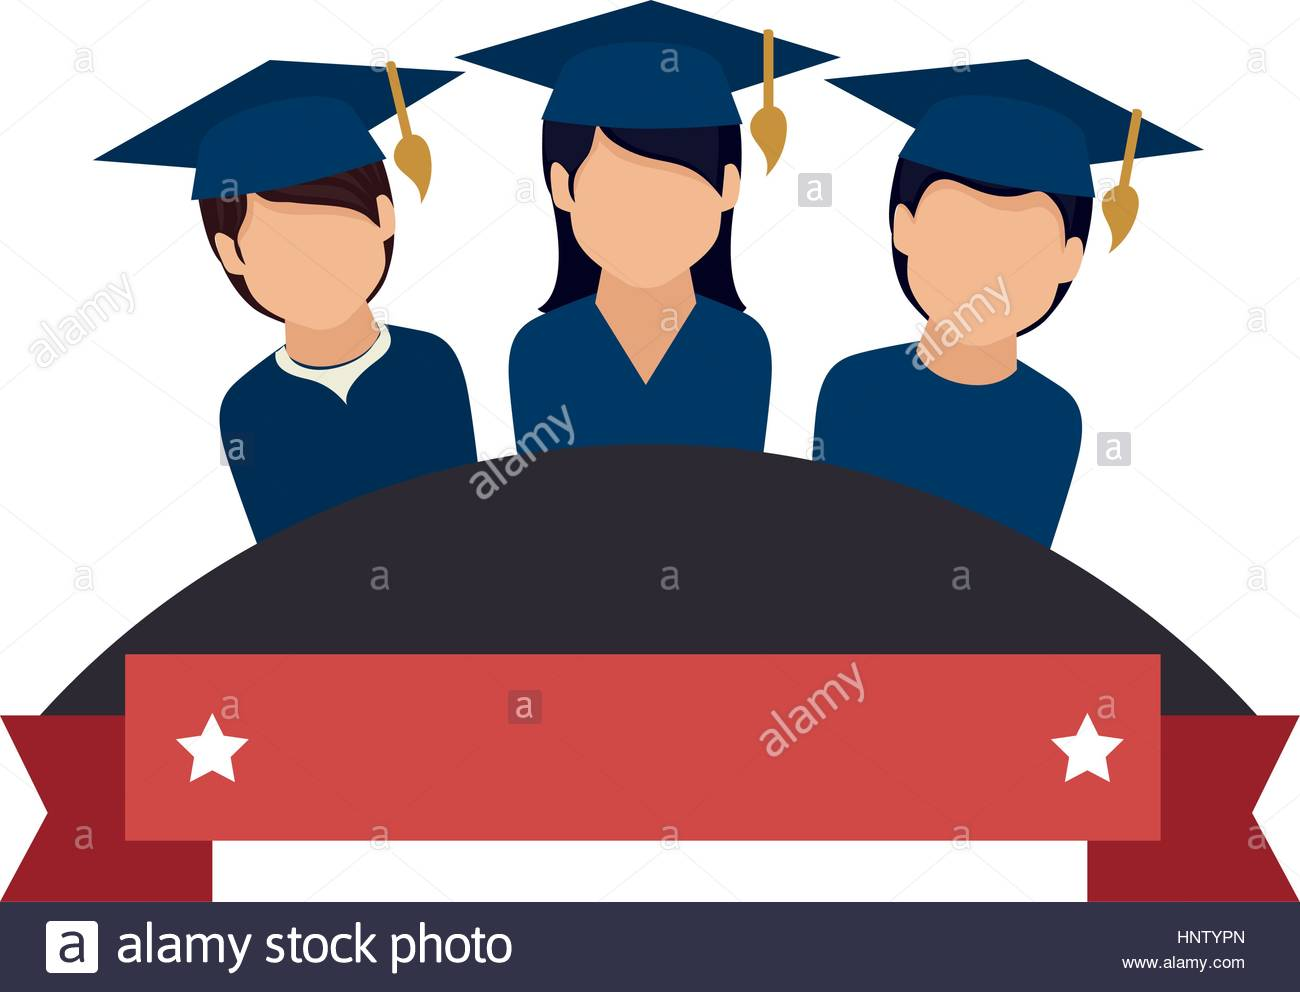 1300x992 Female Graduates Silhouette Stock Photos Amp Female Graduates